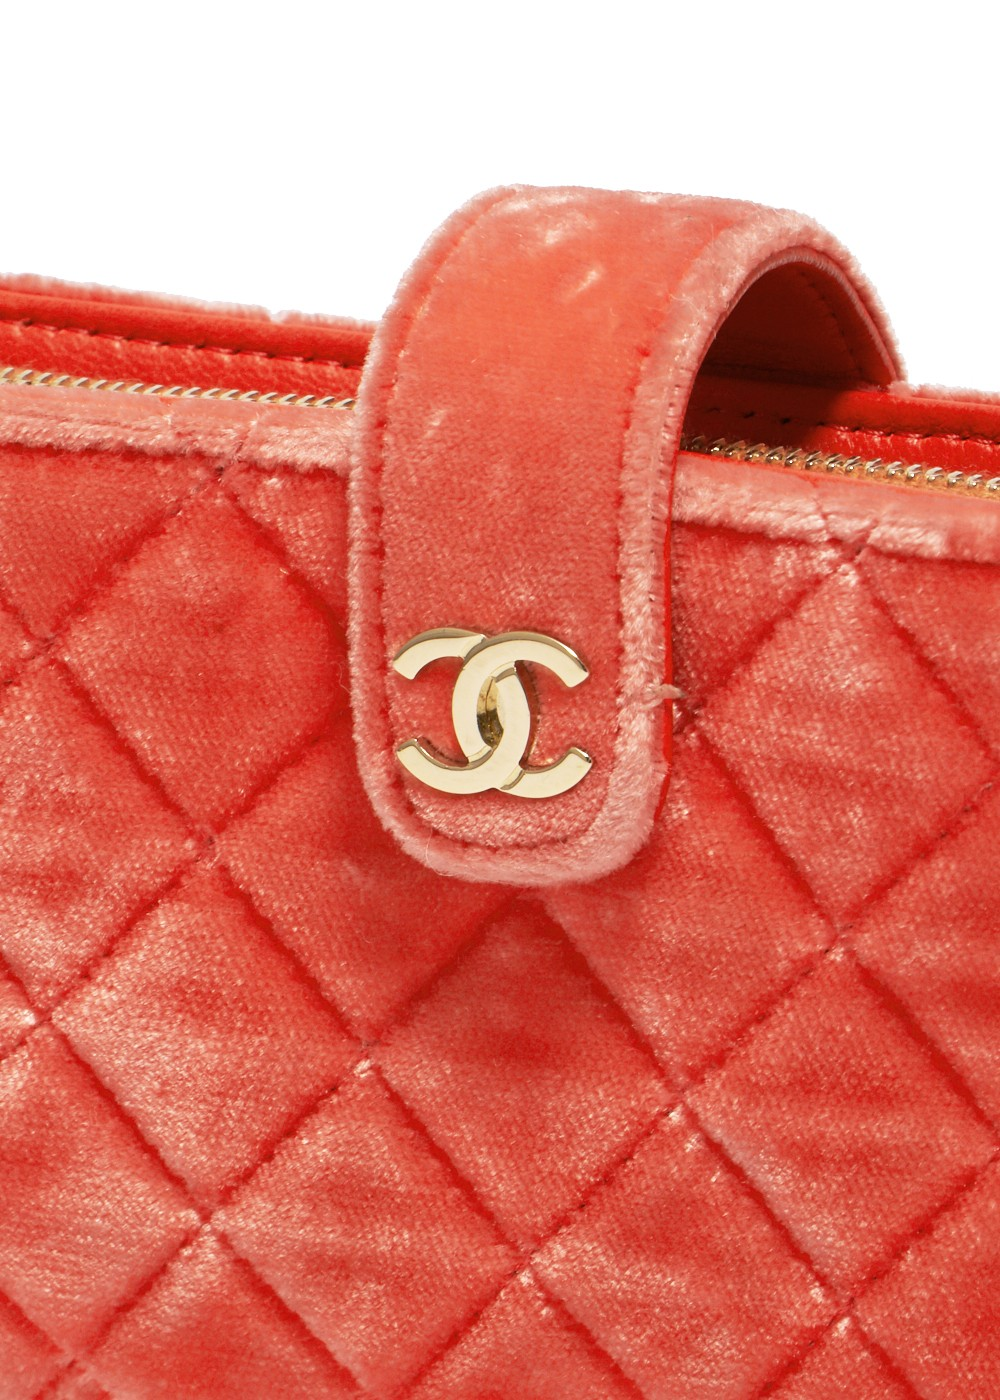 CHANEL チェーンウォレット ベロア |OTHER|レディース財布|Wallet Collection